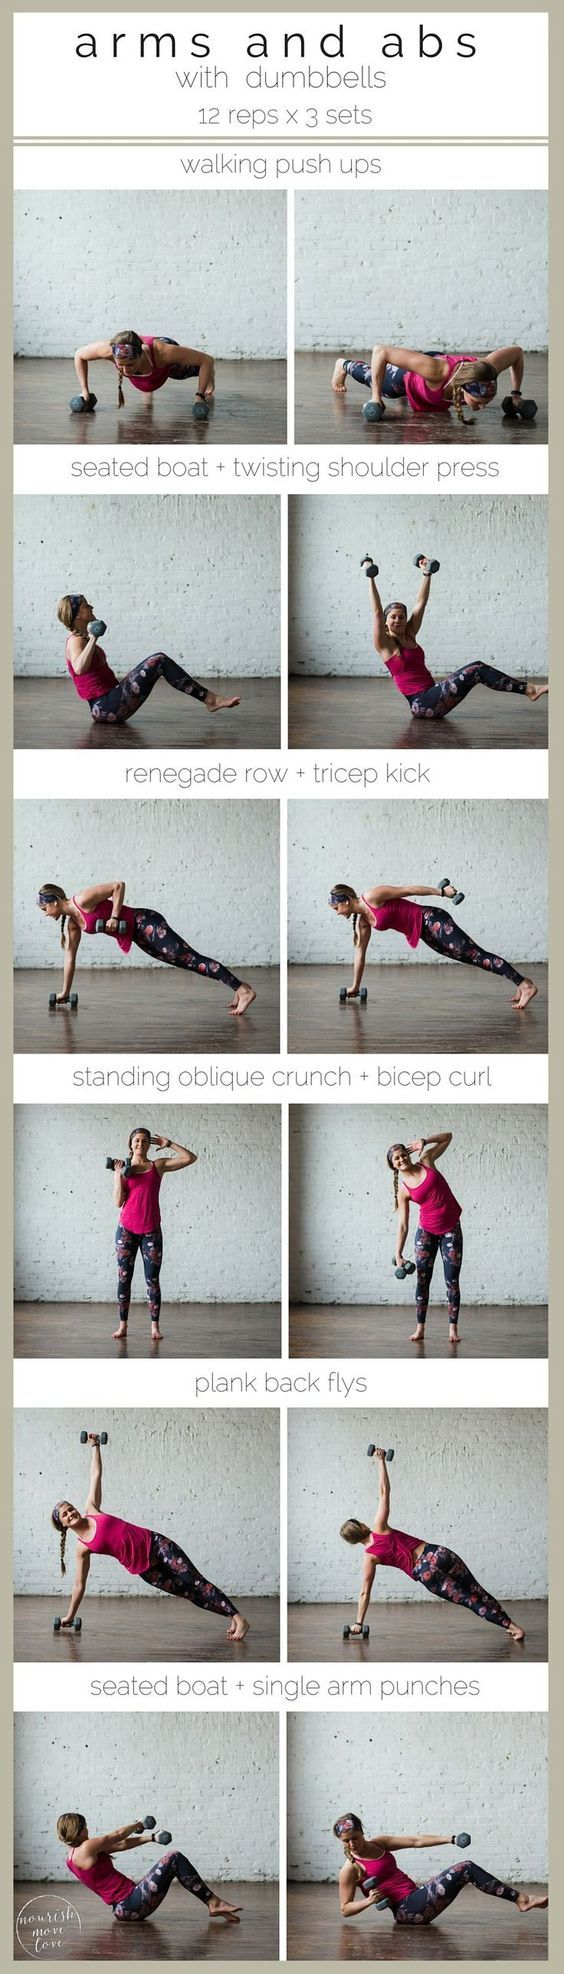 6-move arms and abs workout to strengthen and tone |6-moves, 20 minutes, and a set of 5-15 pound dumbbells is all you need to move through this arms and abs strength training and toning workout. | www.nourishmovelo...